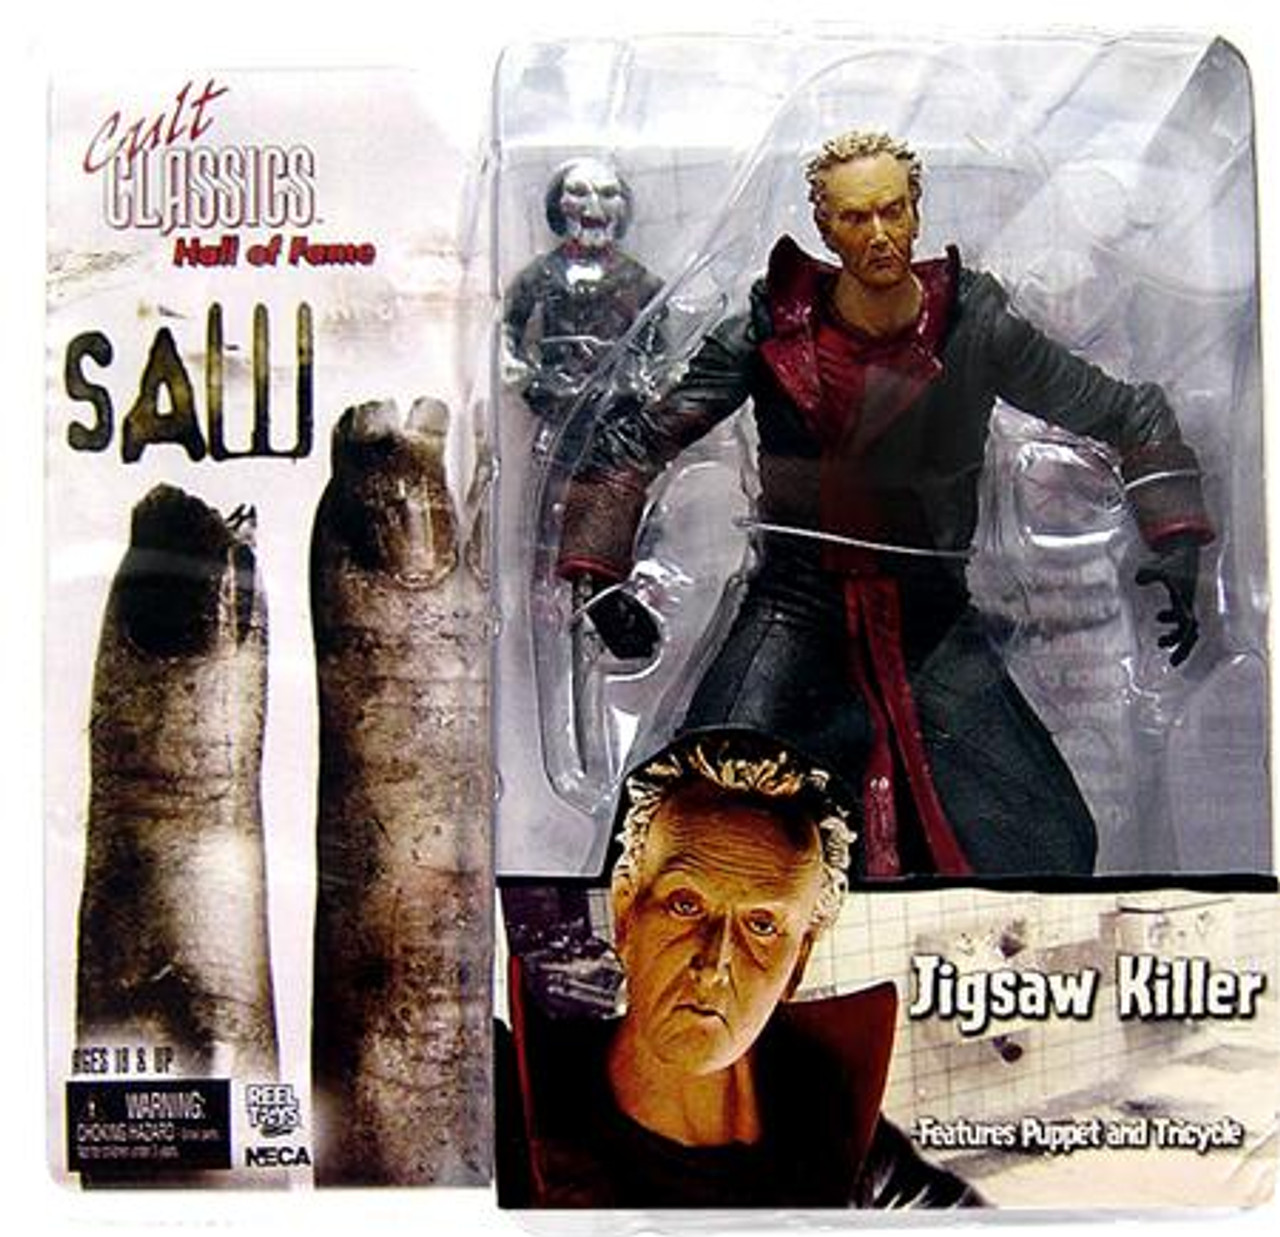 NECA Saw II Cult Classics Hall of Fame Jigsaw Killer Action Figure [Saw II]